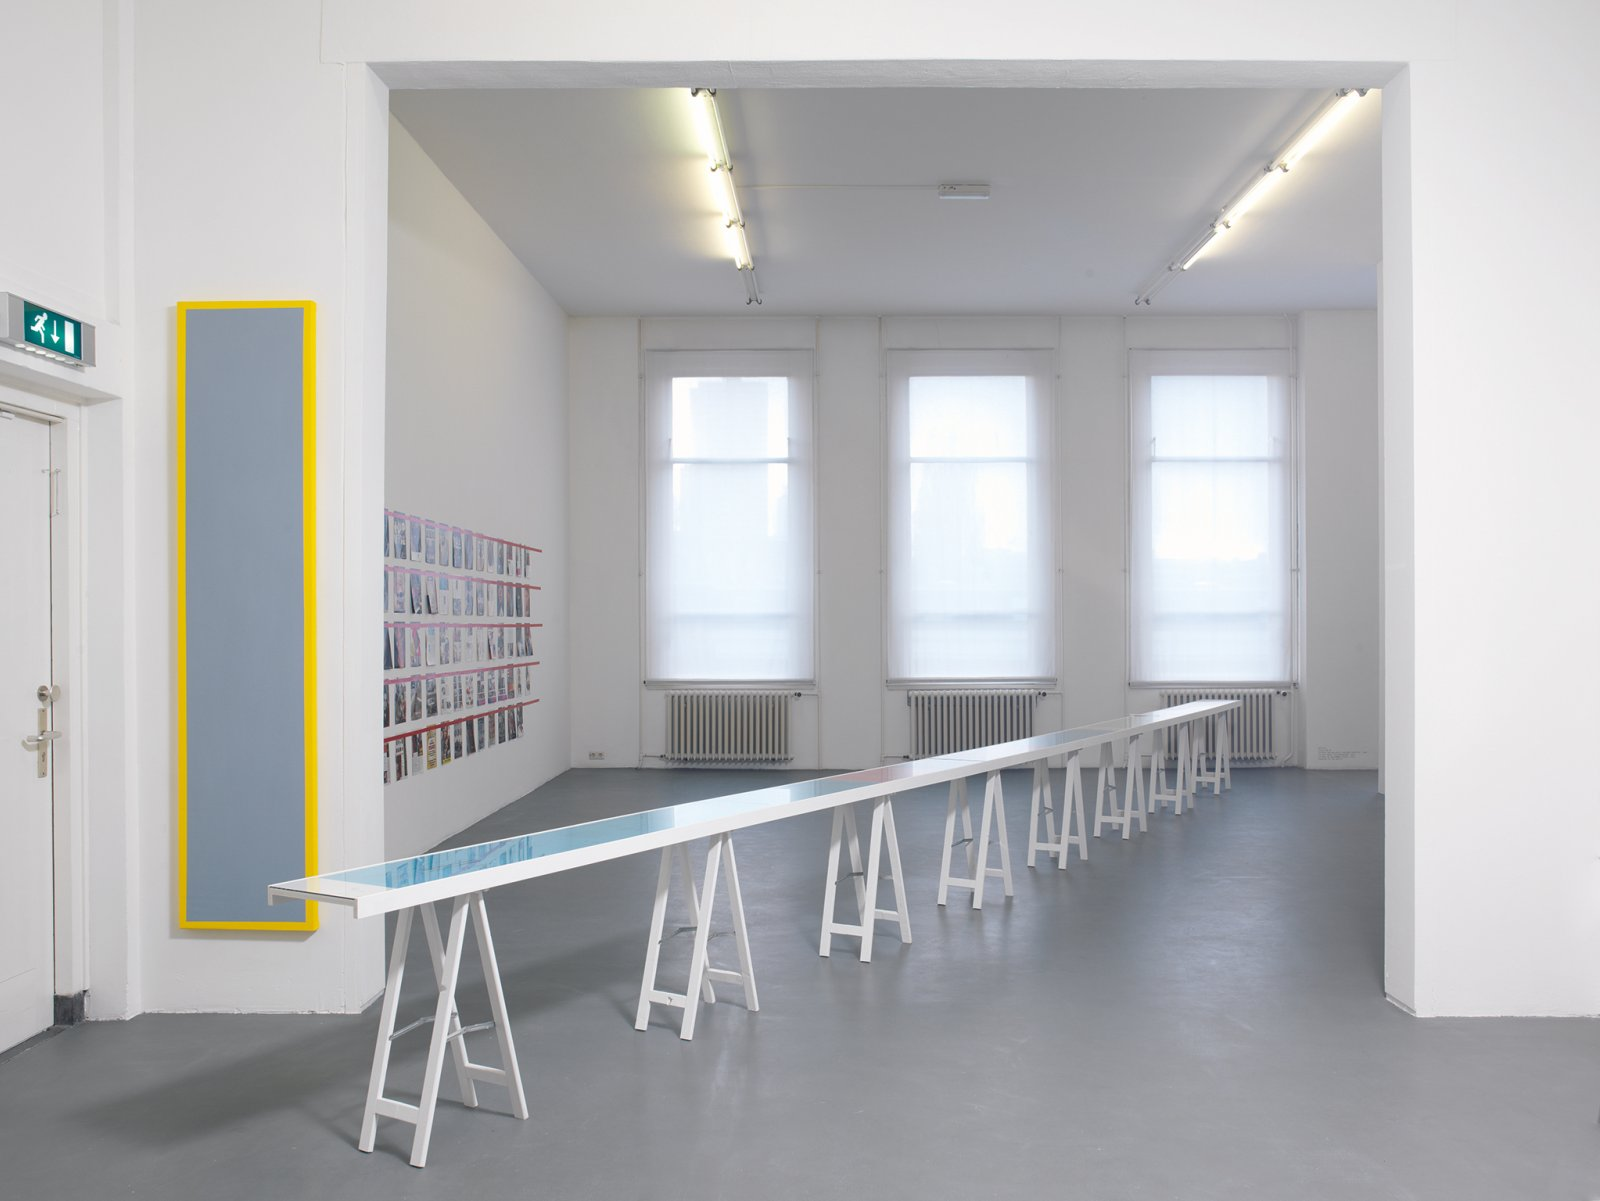 ​​Ian Wallace, ​Untitled (Grey Monochrome with Yellow), 1967–2008, acrylic on canvas, 90 x 20 in. (228 x 50 cm). Installation view, ​A Literature of Images​, Witte de With, Rotterdam, 2008​​​ by Ian Wallace